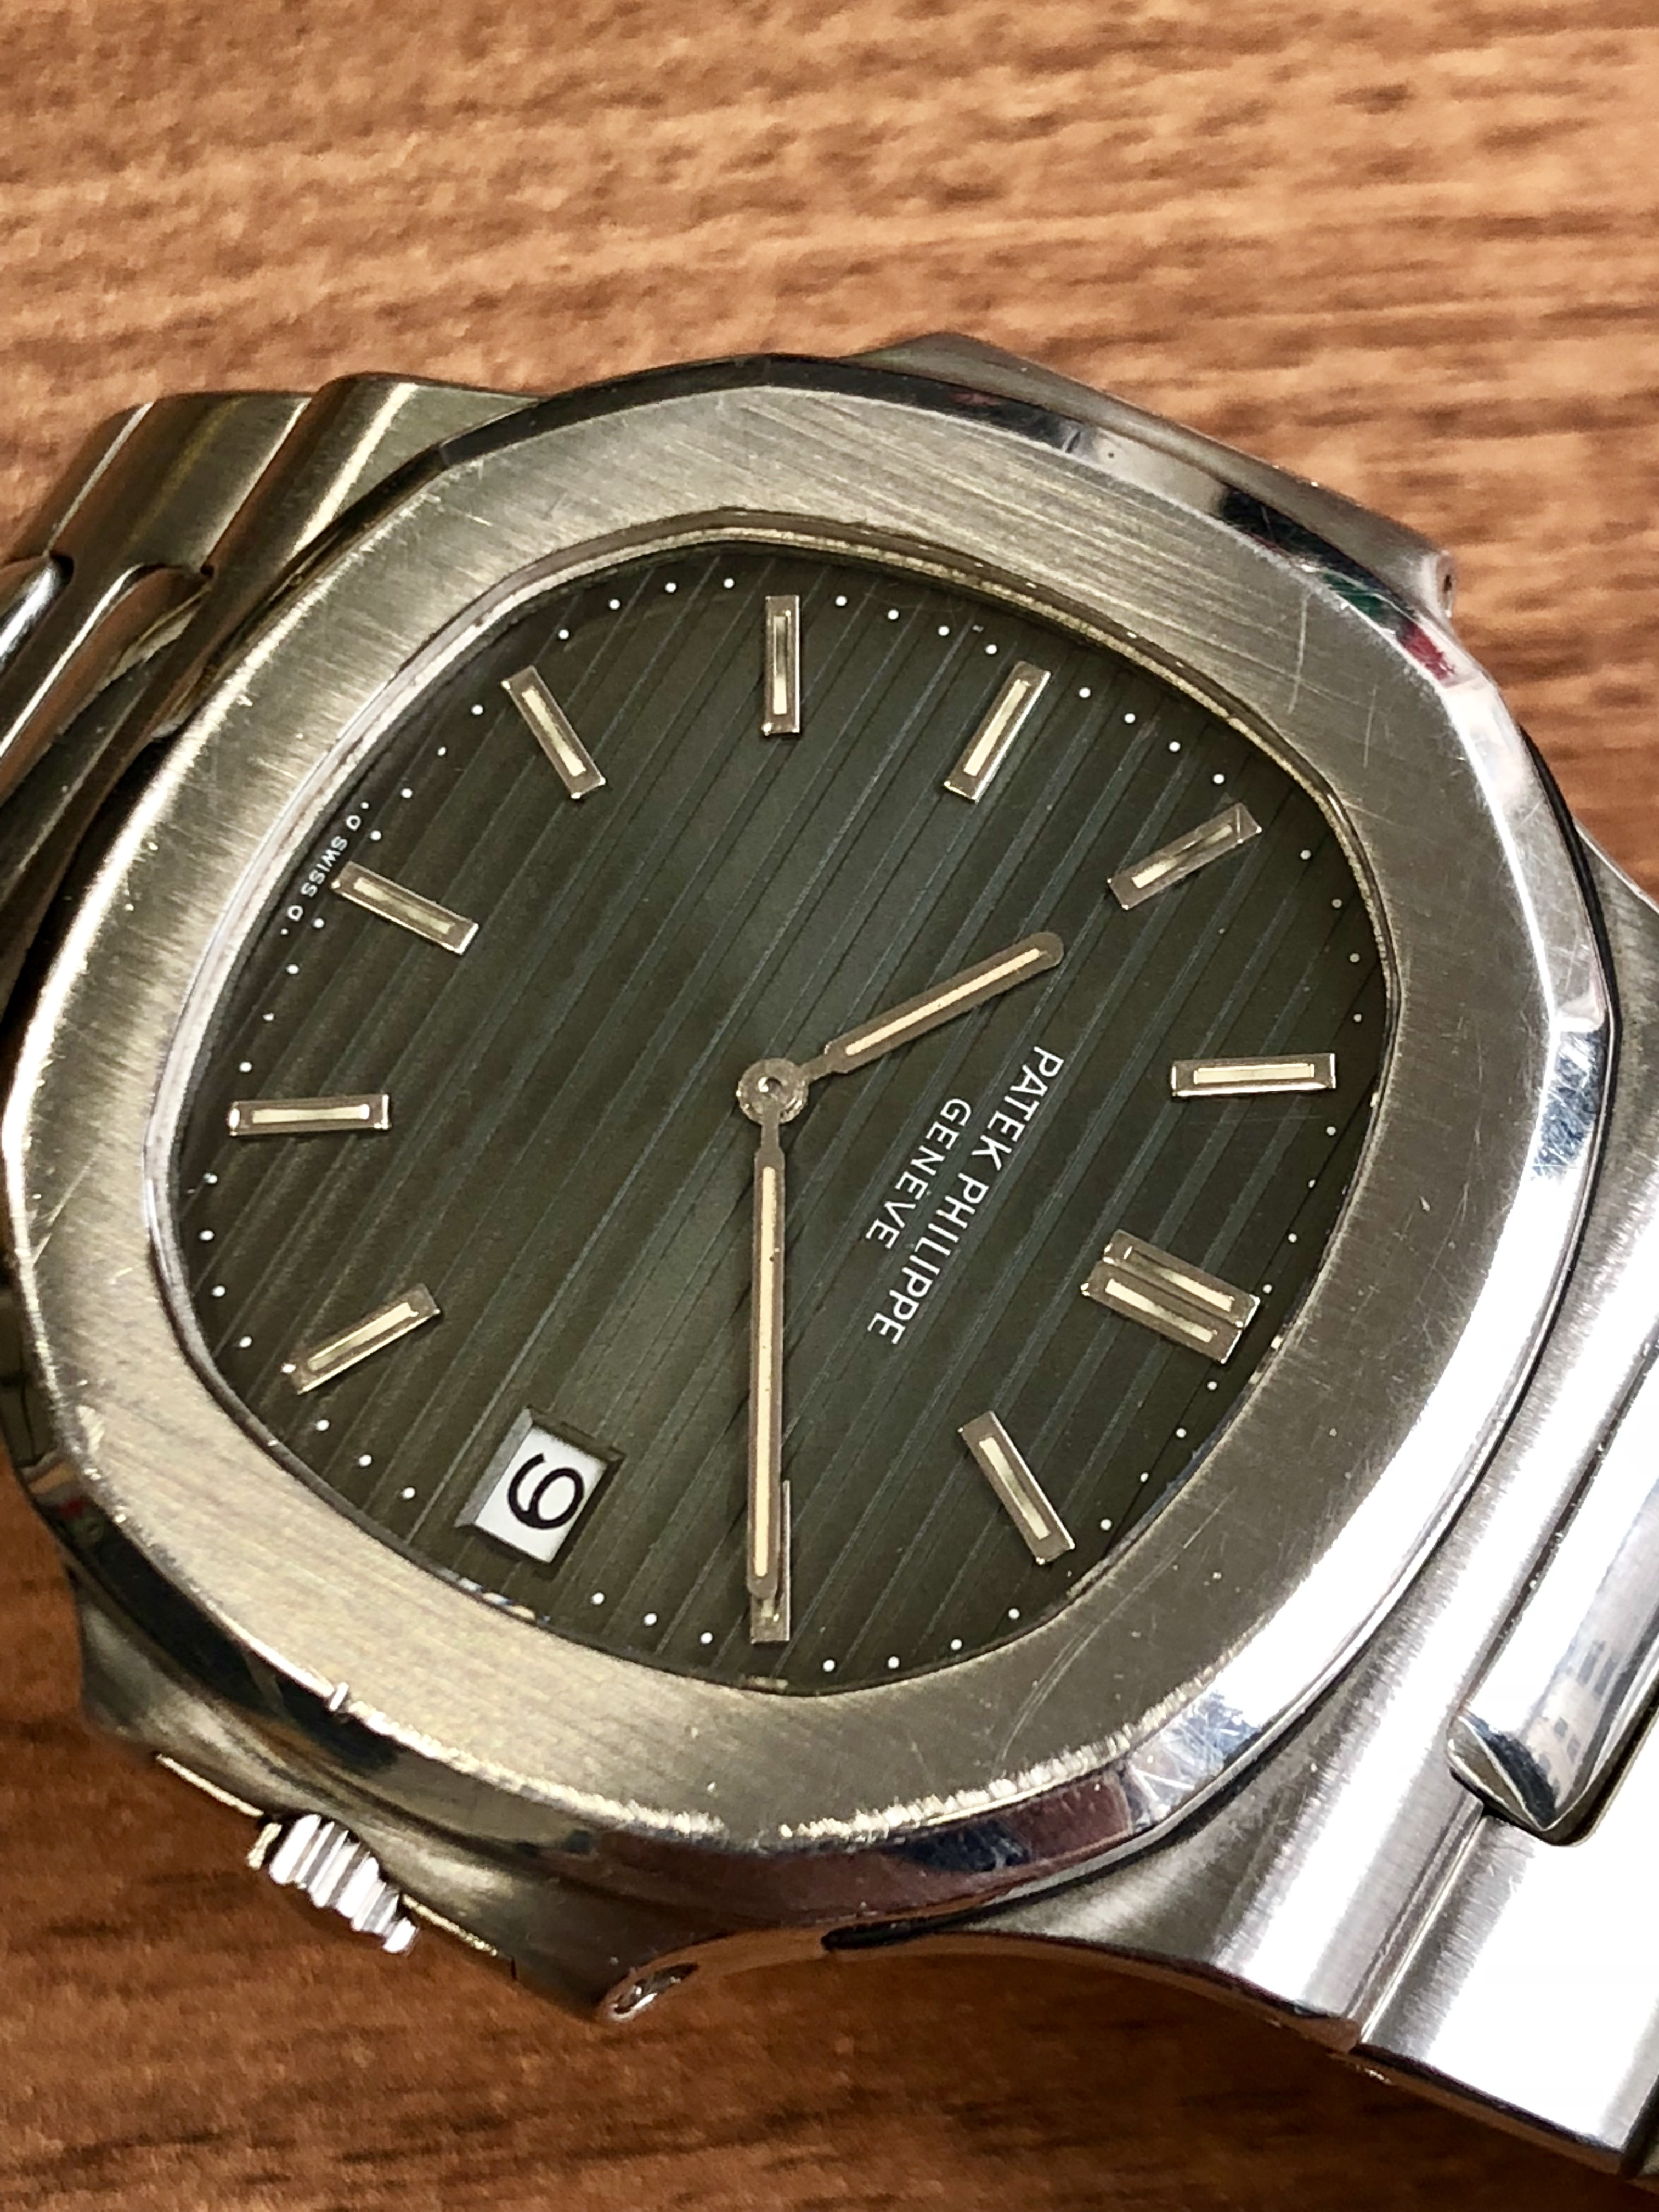 30f3c9b0874 Patek Philippe Nautilus 3700 Fat Links Jumbo - Precious Time Ltd